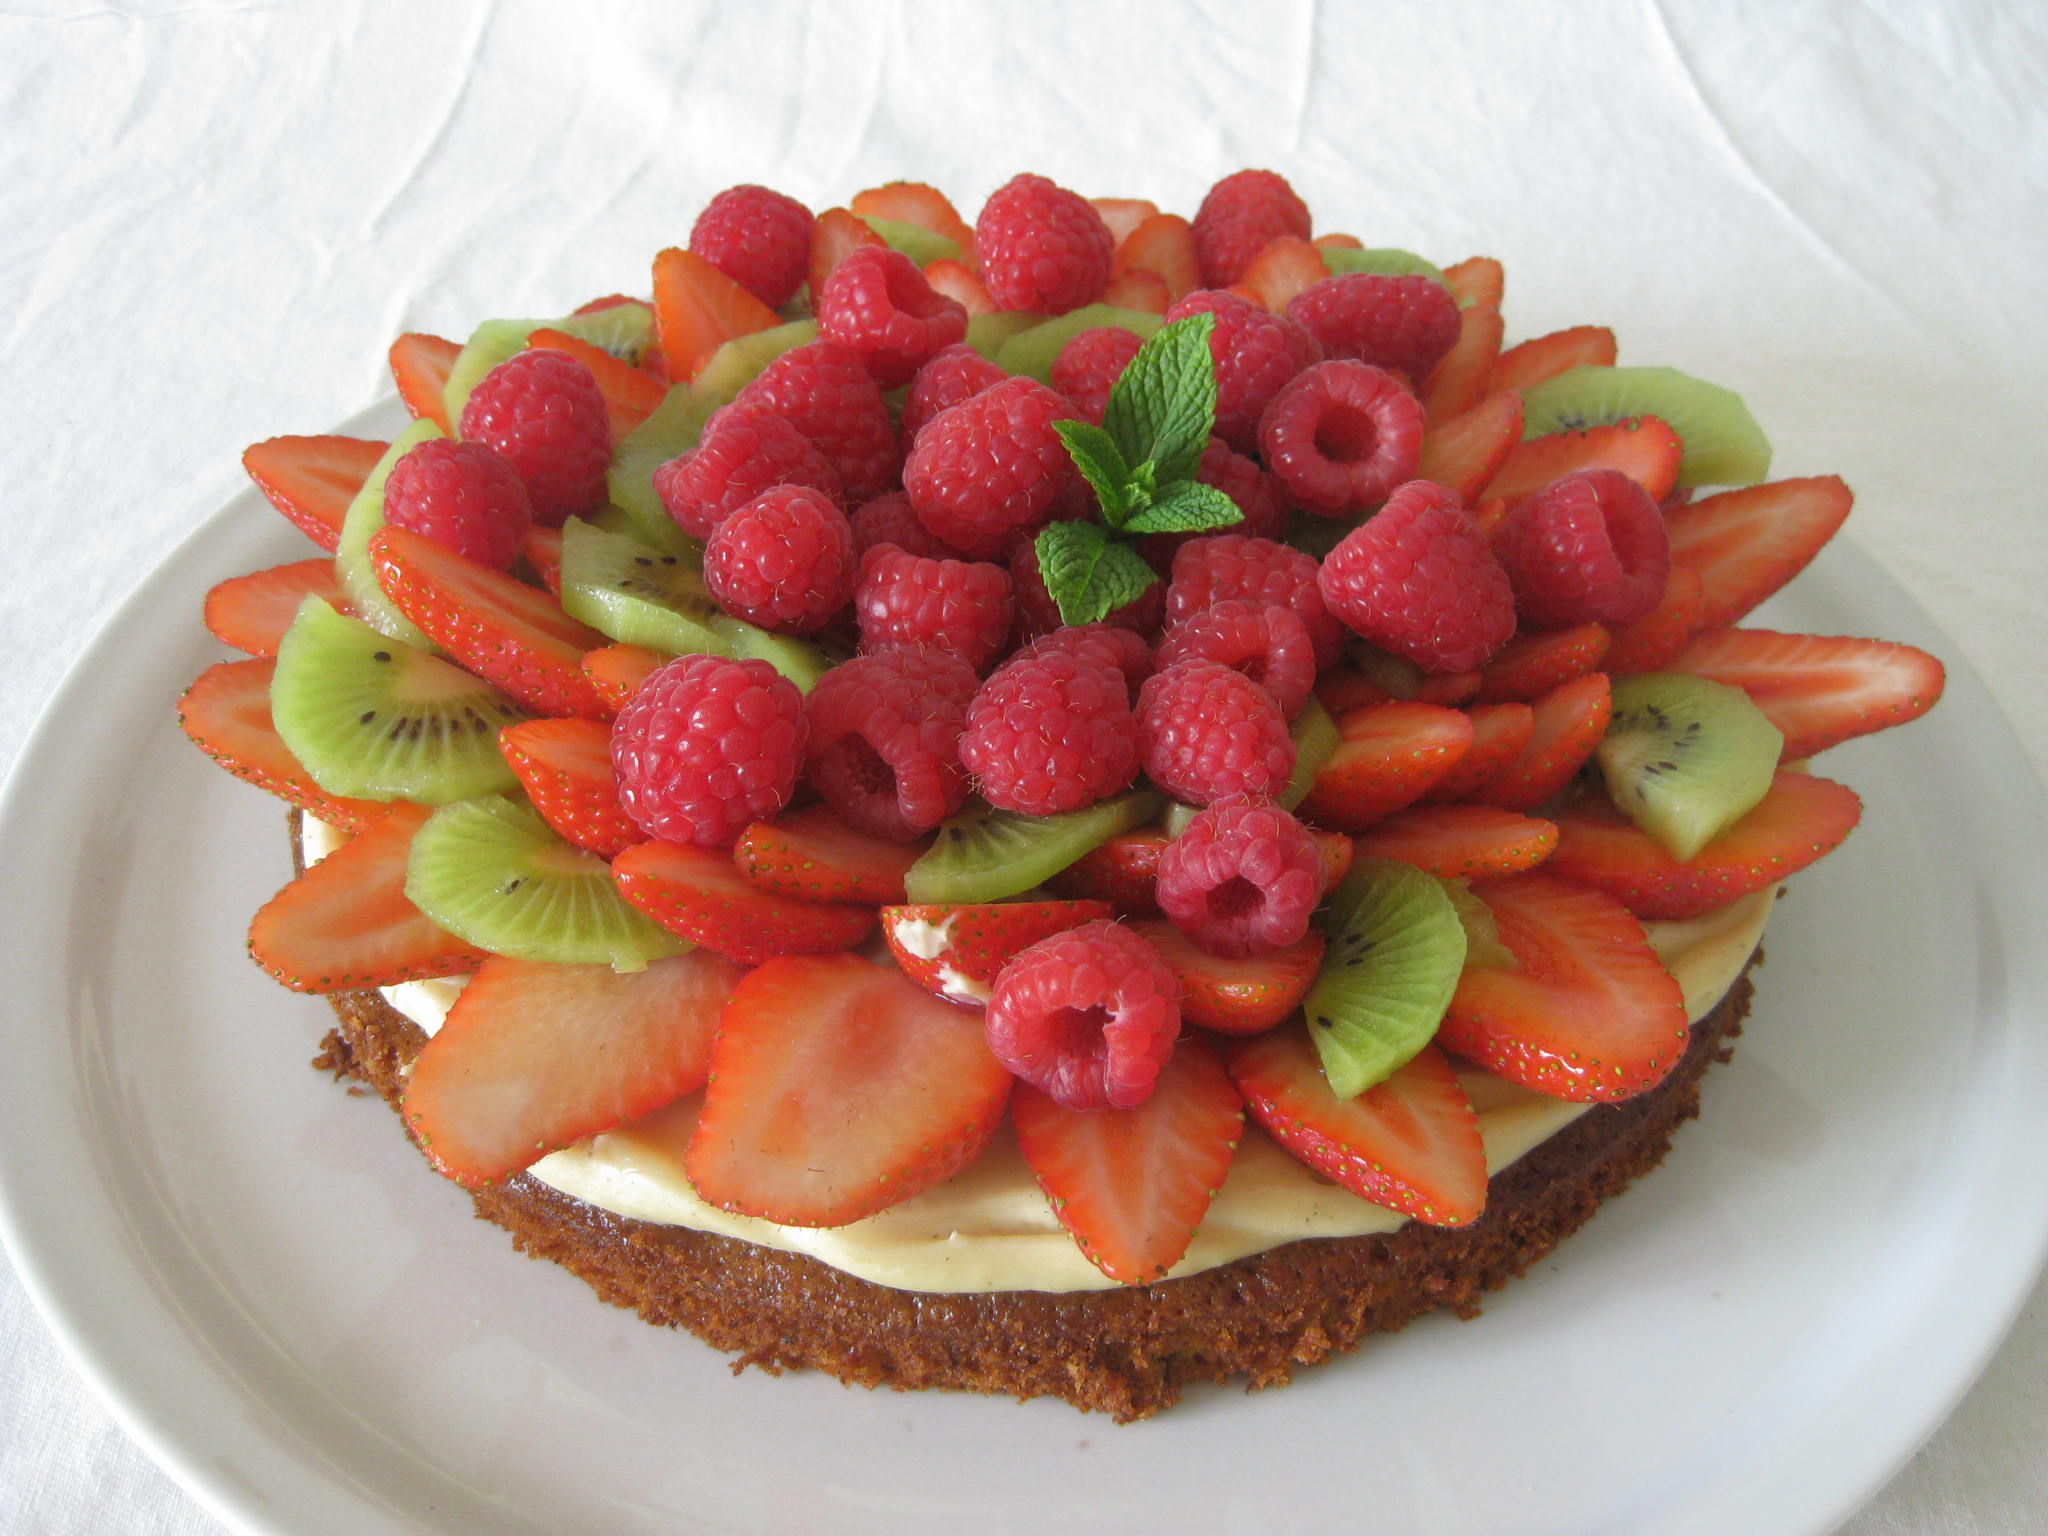 20130609 Gâteau noisette et multi fruits (8)